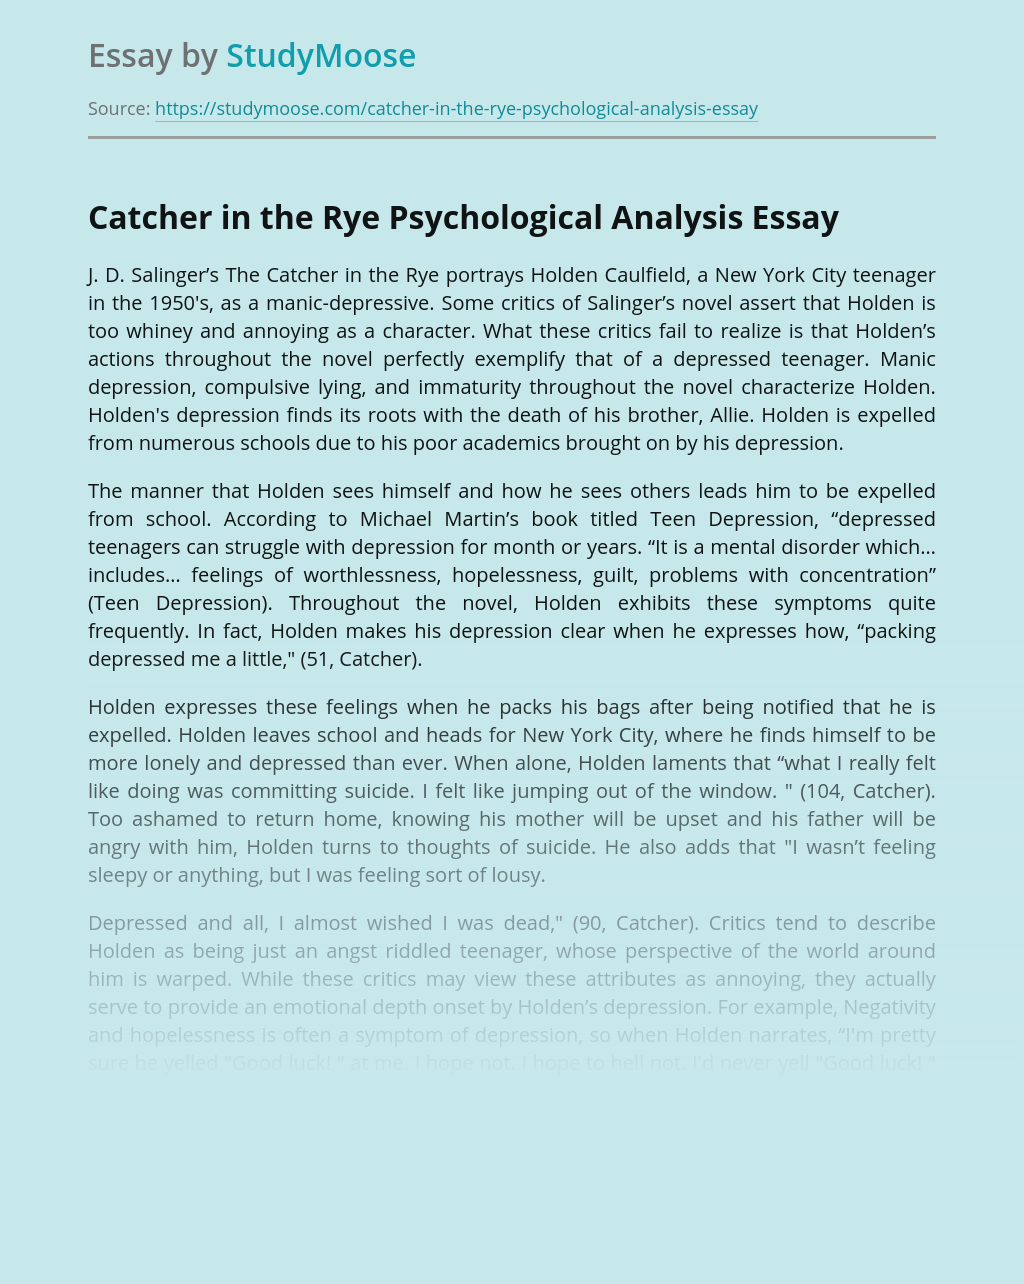 Catcher in the Rye Psychological Analysis